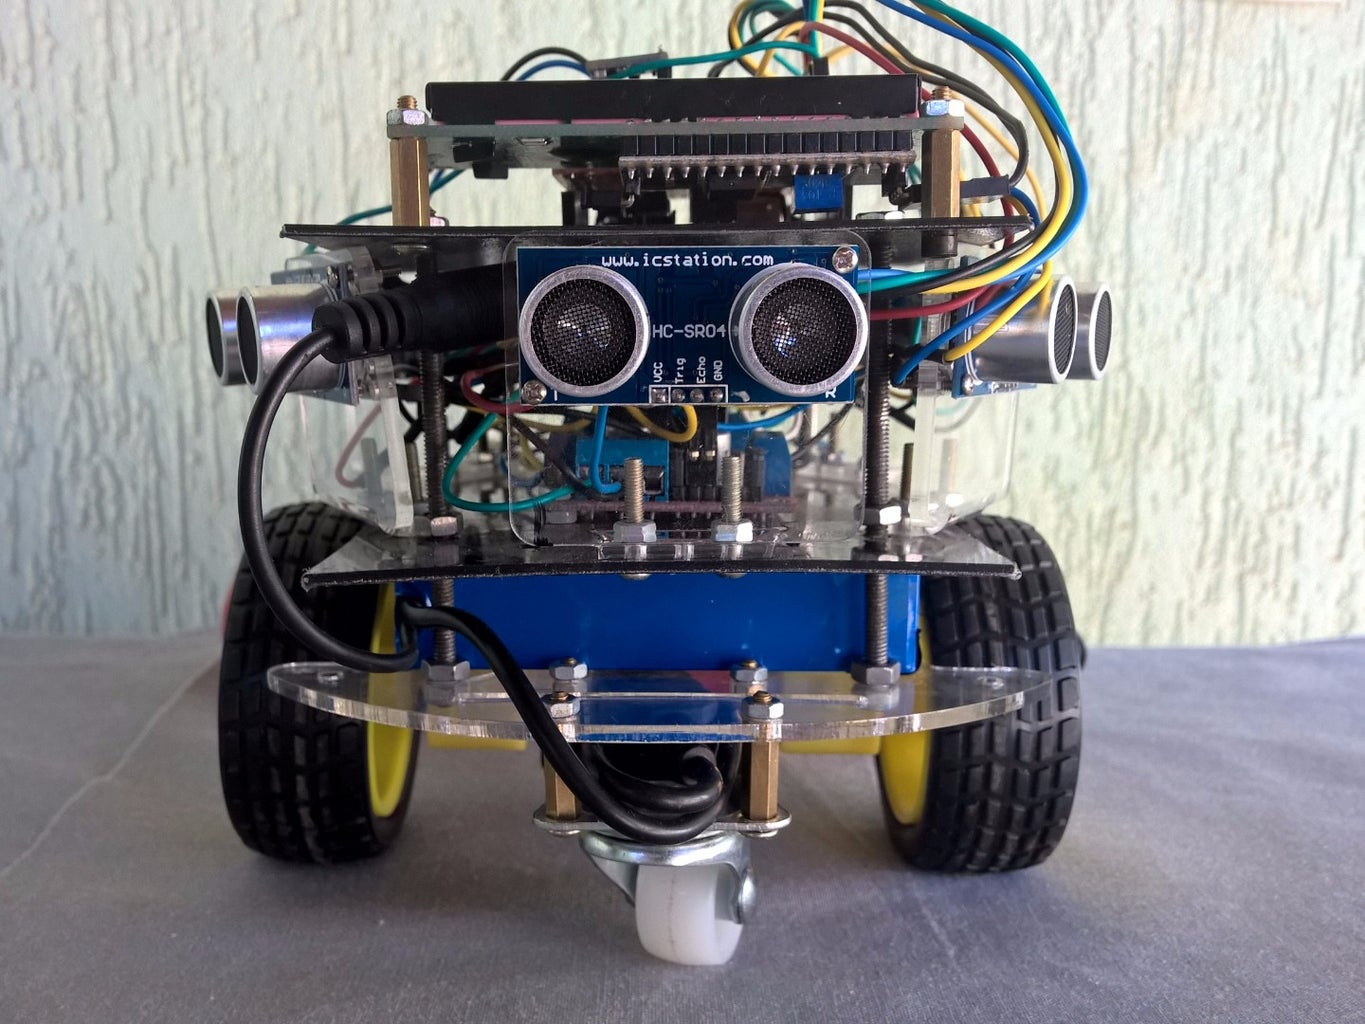 MOUNTING THE ROBOT